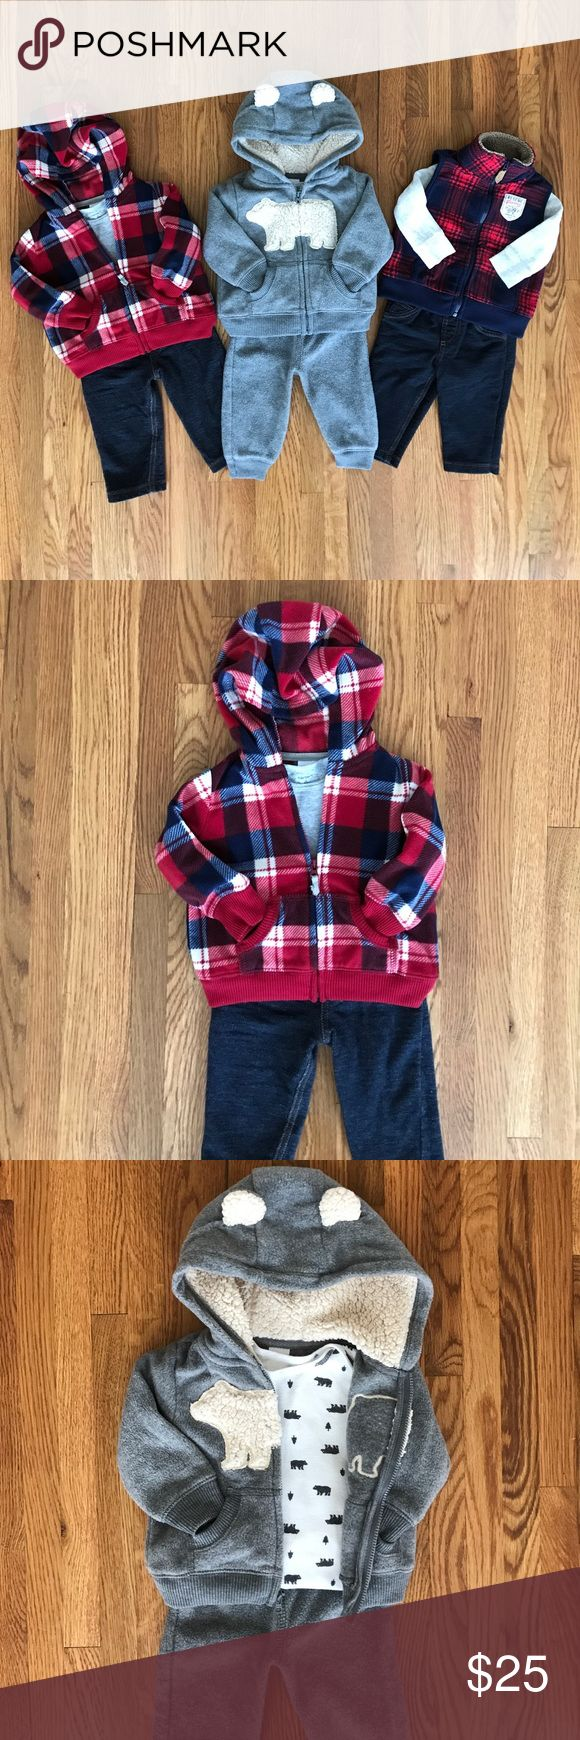 3 Adorable Outfits (or 1 outfit for $10) Set of three Carters 6M baby boy outfits.  From left to right: plaid red, blue and white zip up hoodie, solid short sleeve gray onesie, and pants.  Warm zip up hoodie, polar bear and woodsy print short sleeve onesie, and gray pants.  Red and blue zip up vest, long sleeve onesie, and pants. All in great condition 👶🐸 Carter's Matching Sets